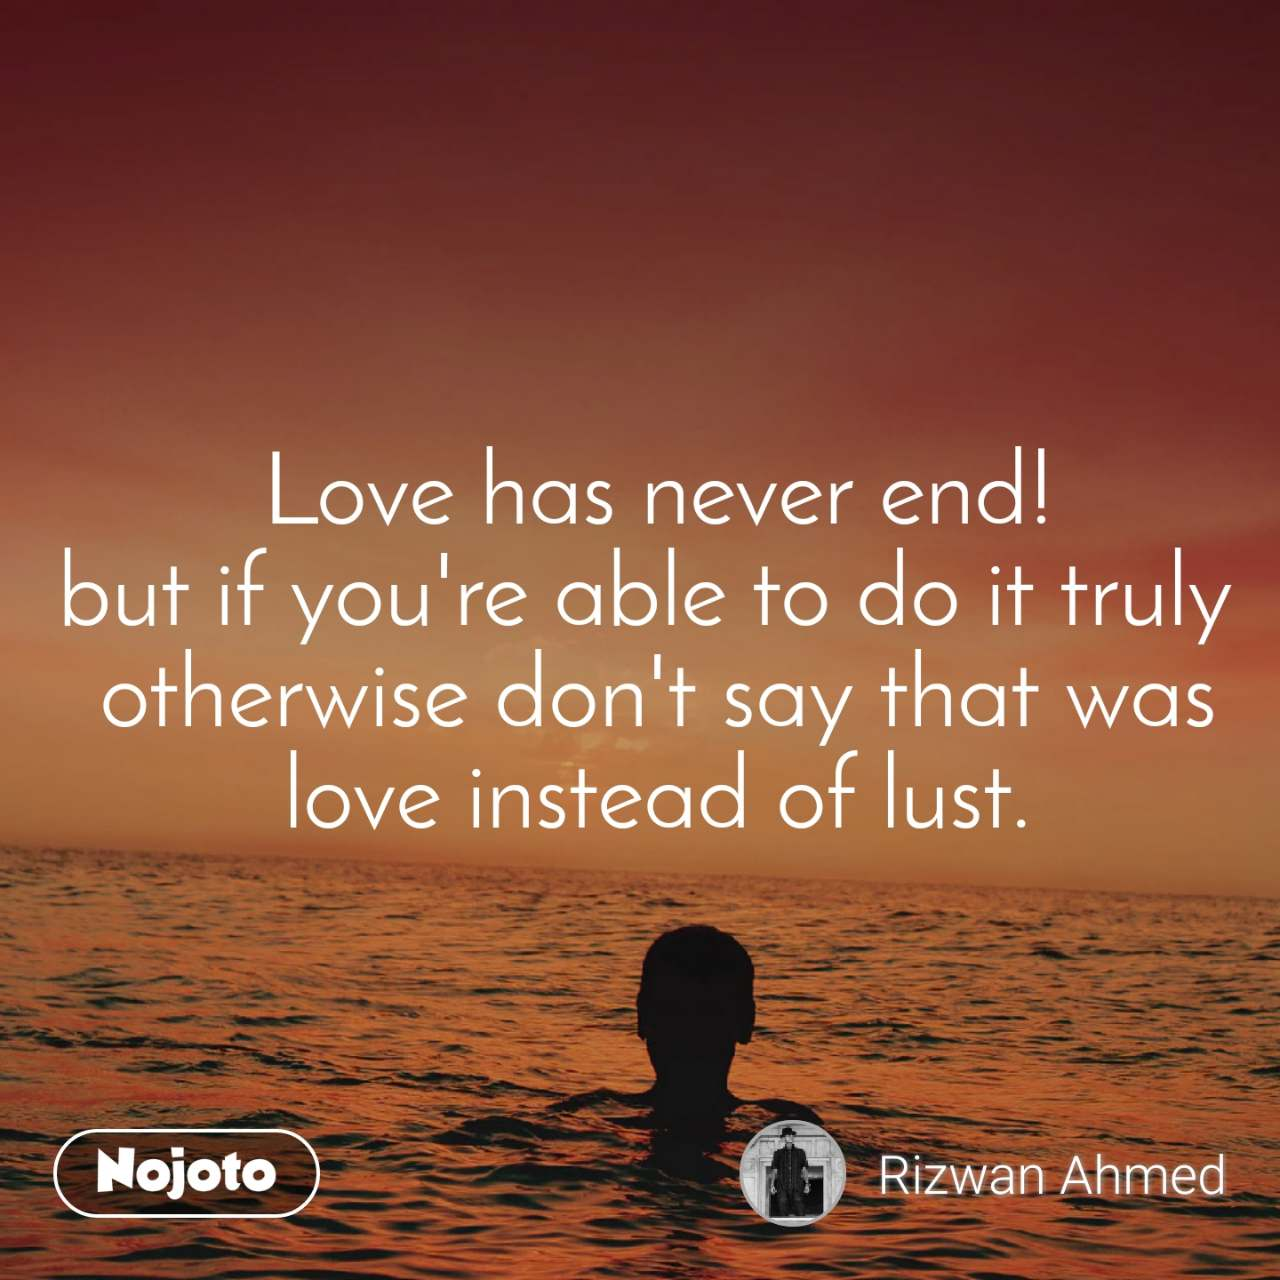 Love has never end! but if you're able to do it truly  otherwise don't say that was love instead of lust.